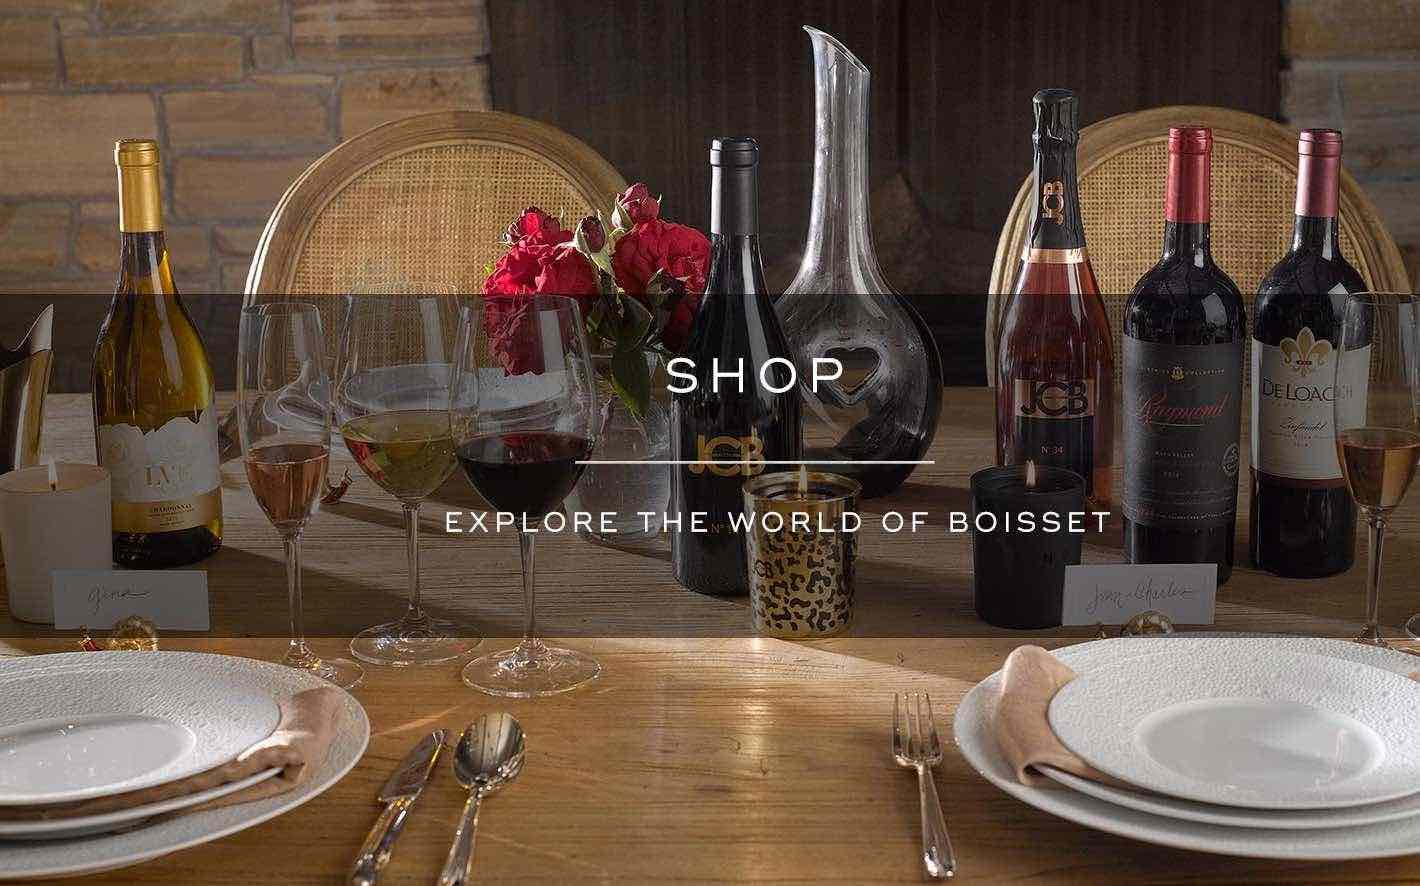 Photo of a table display of organic, biodynamic and sustainable wines, decanters and crystal stemware available in our wine shoppe